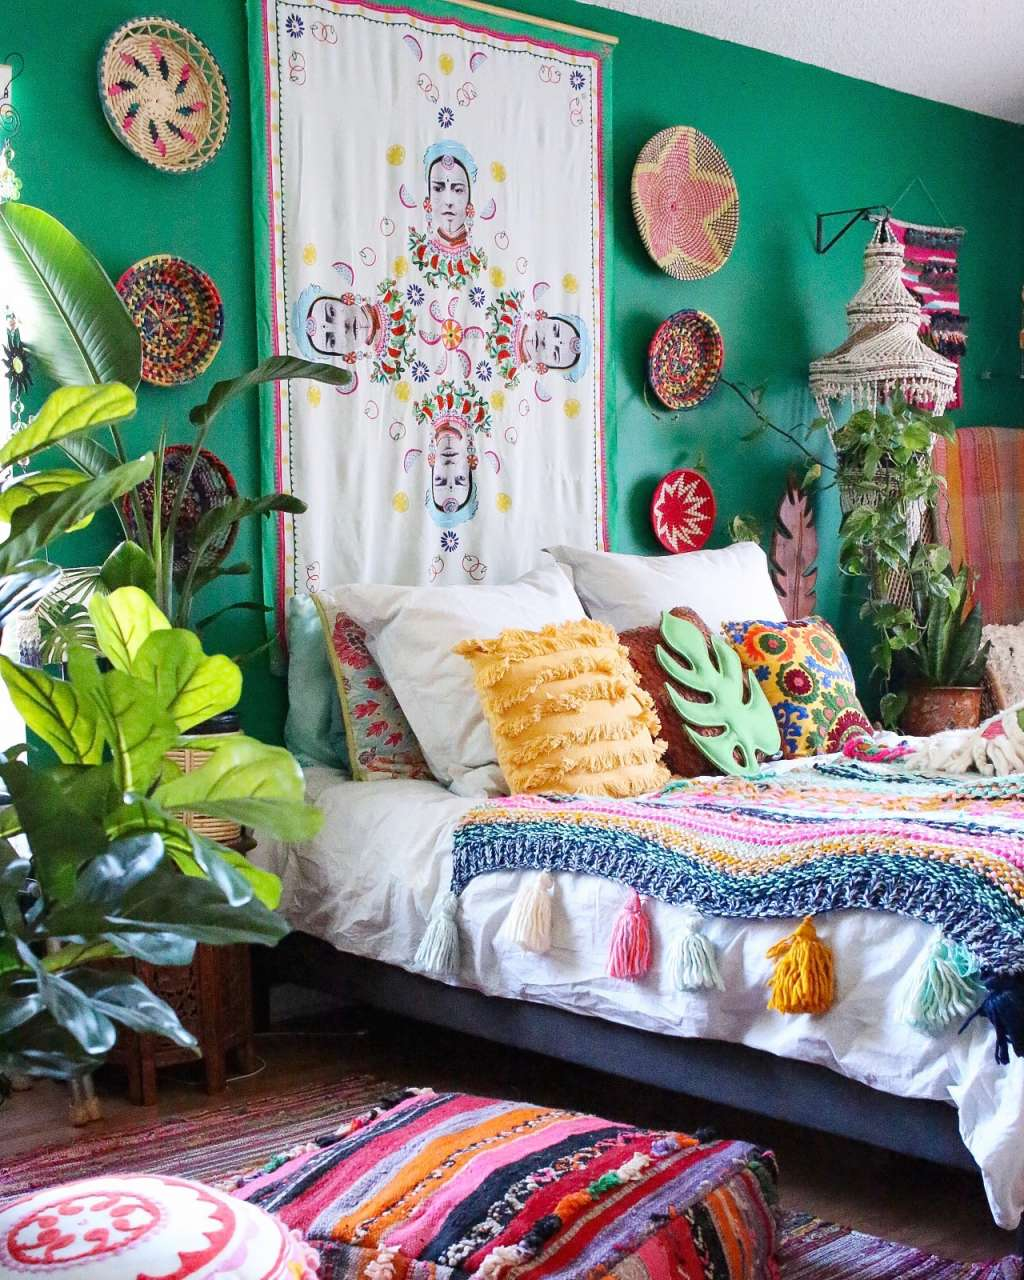 These Are the Most Beautiful Bohemian Bedrooms in the World